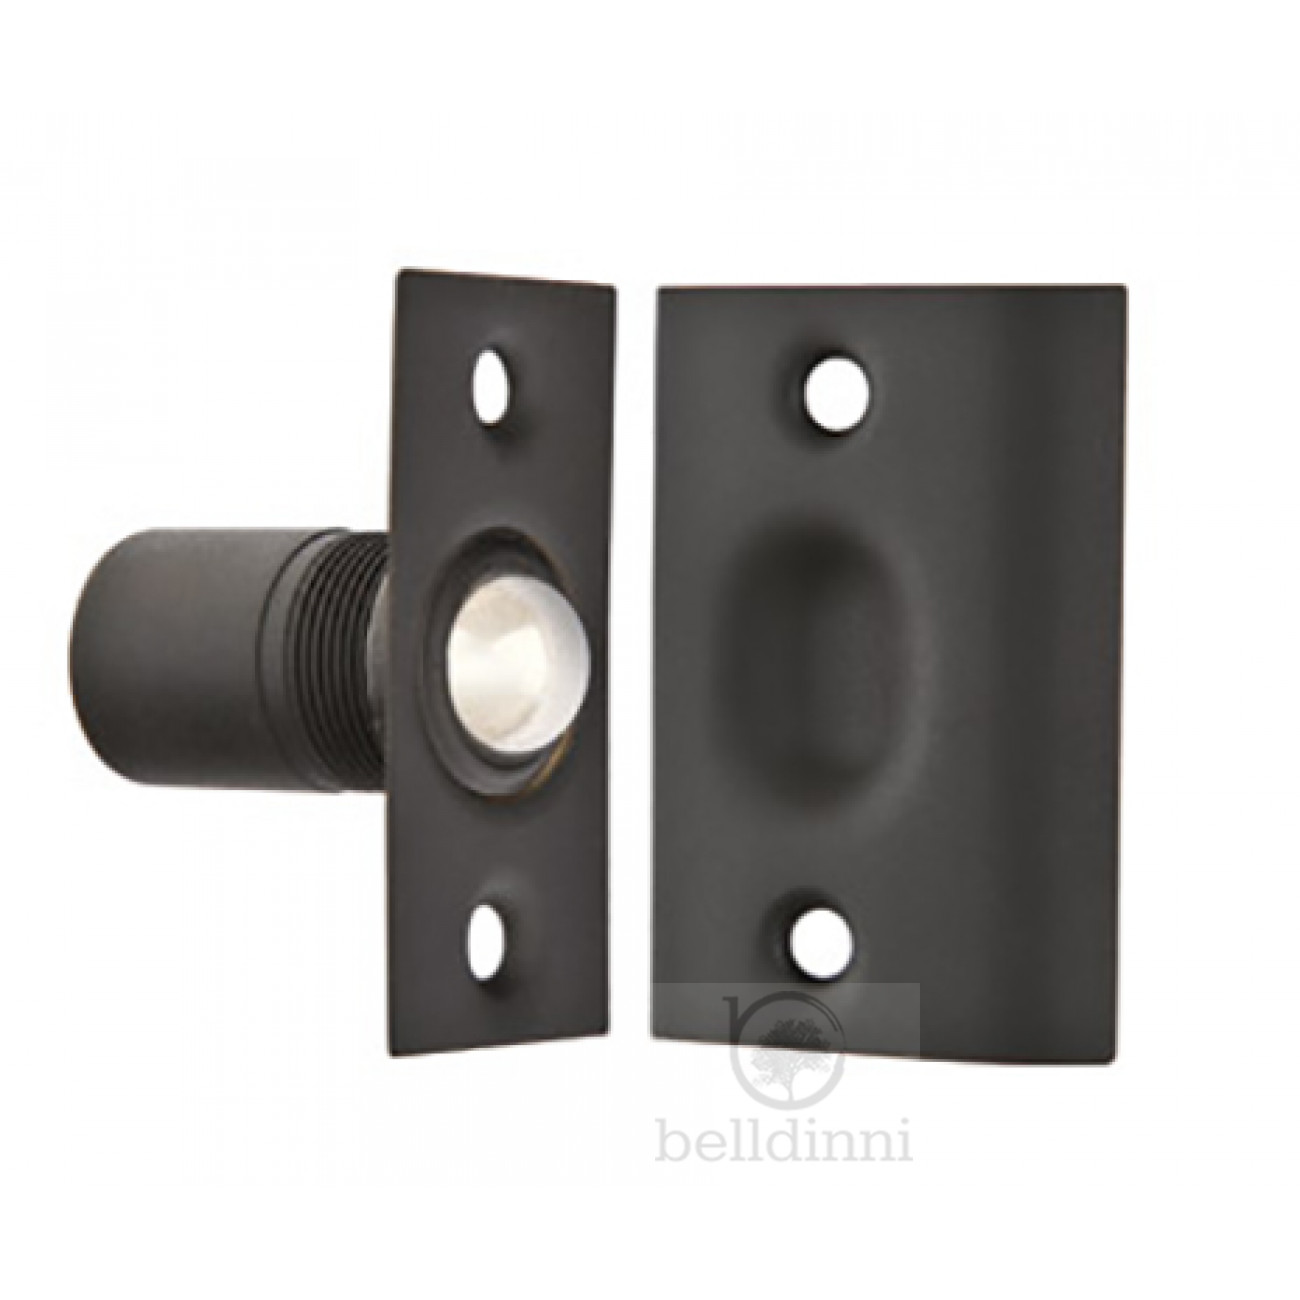 BALL & CATCH SOLID BRASS - 8802 US19 FLAT BLACK